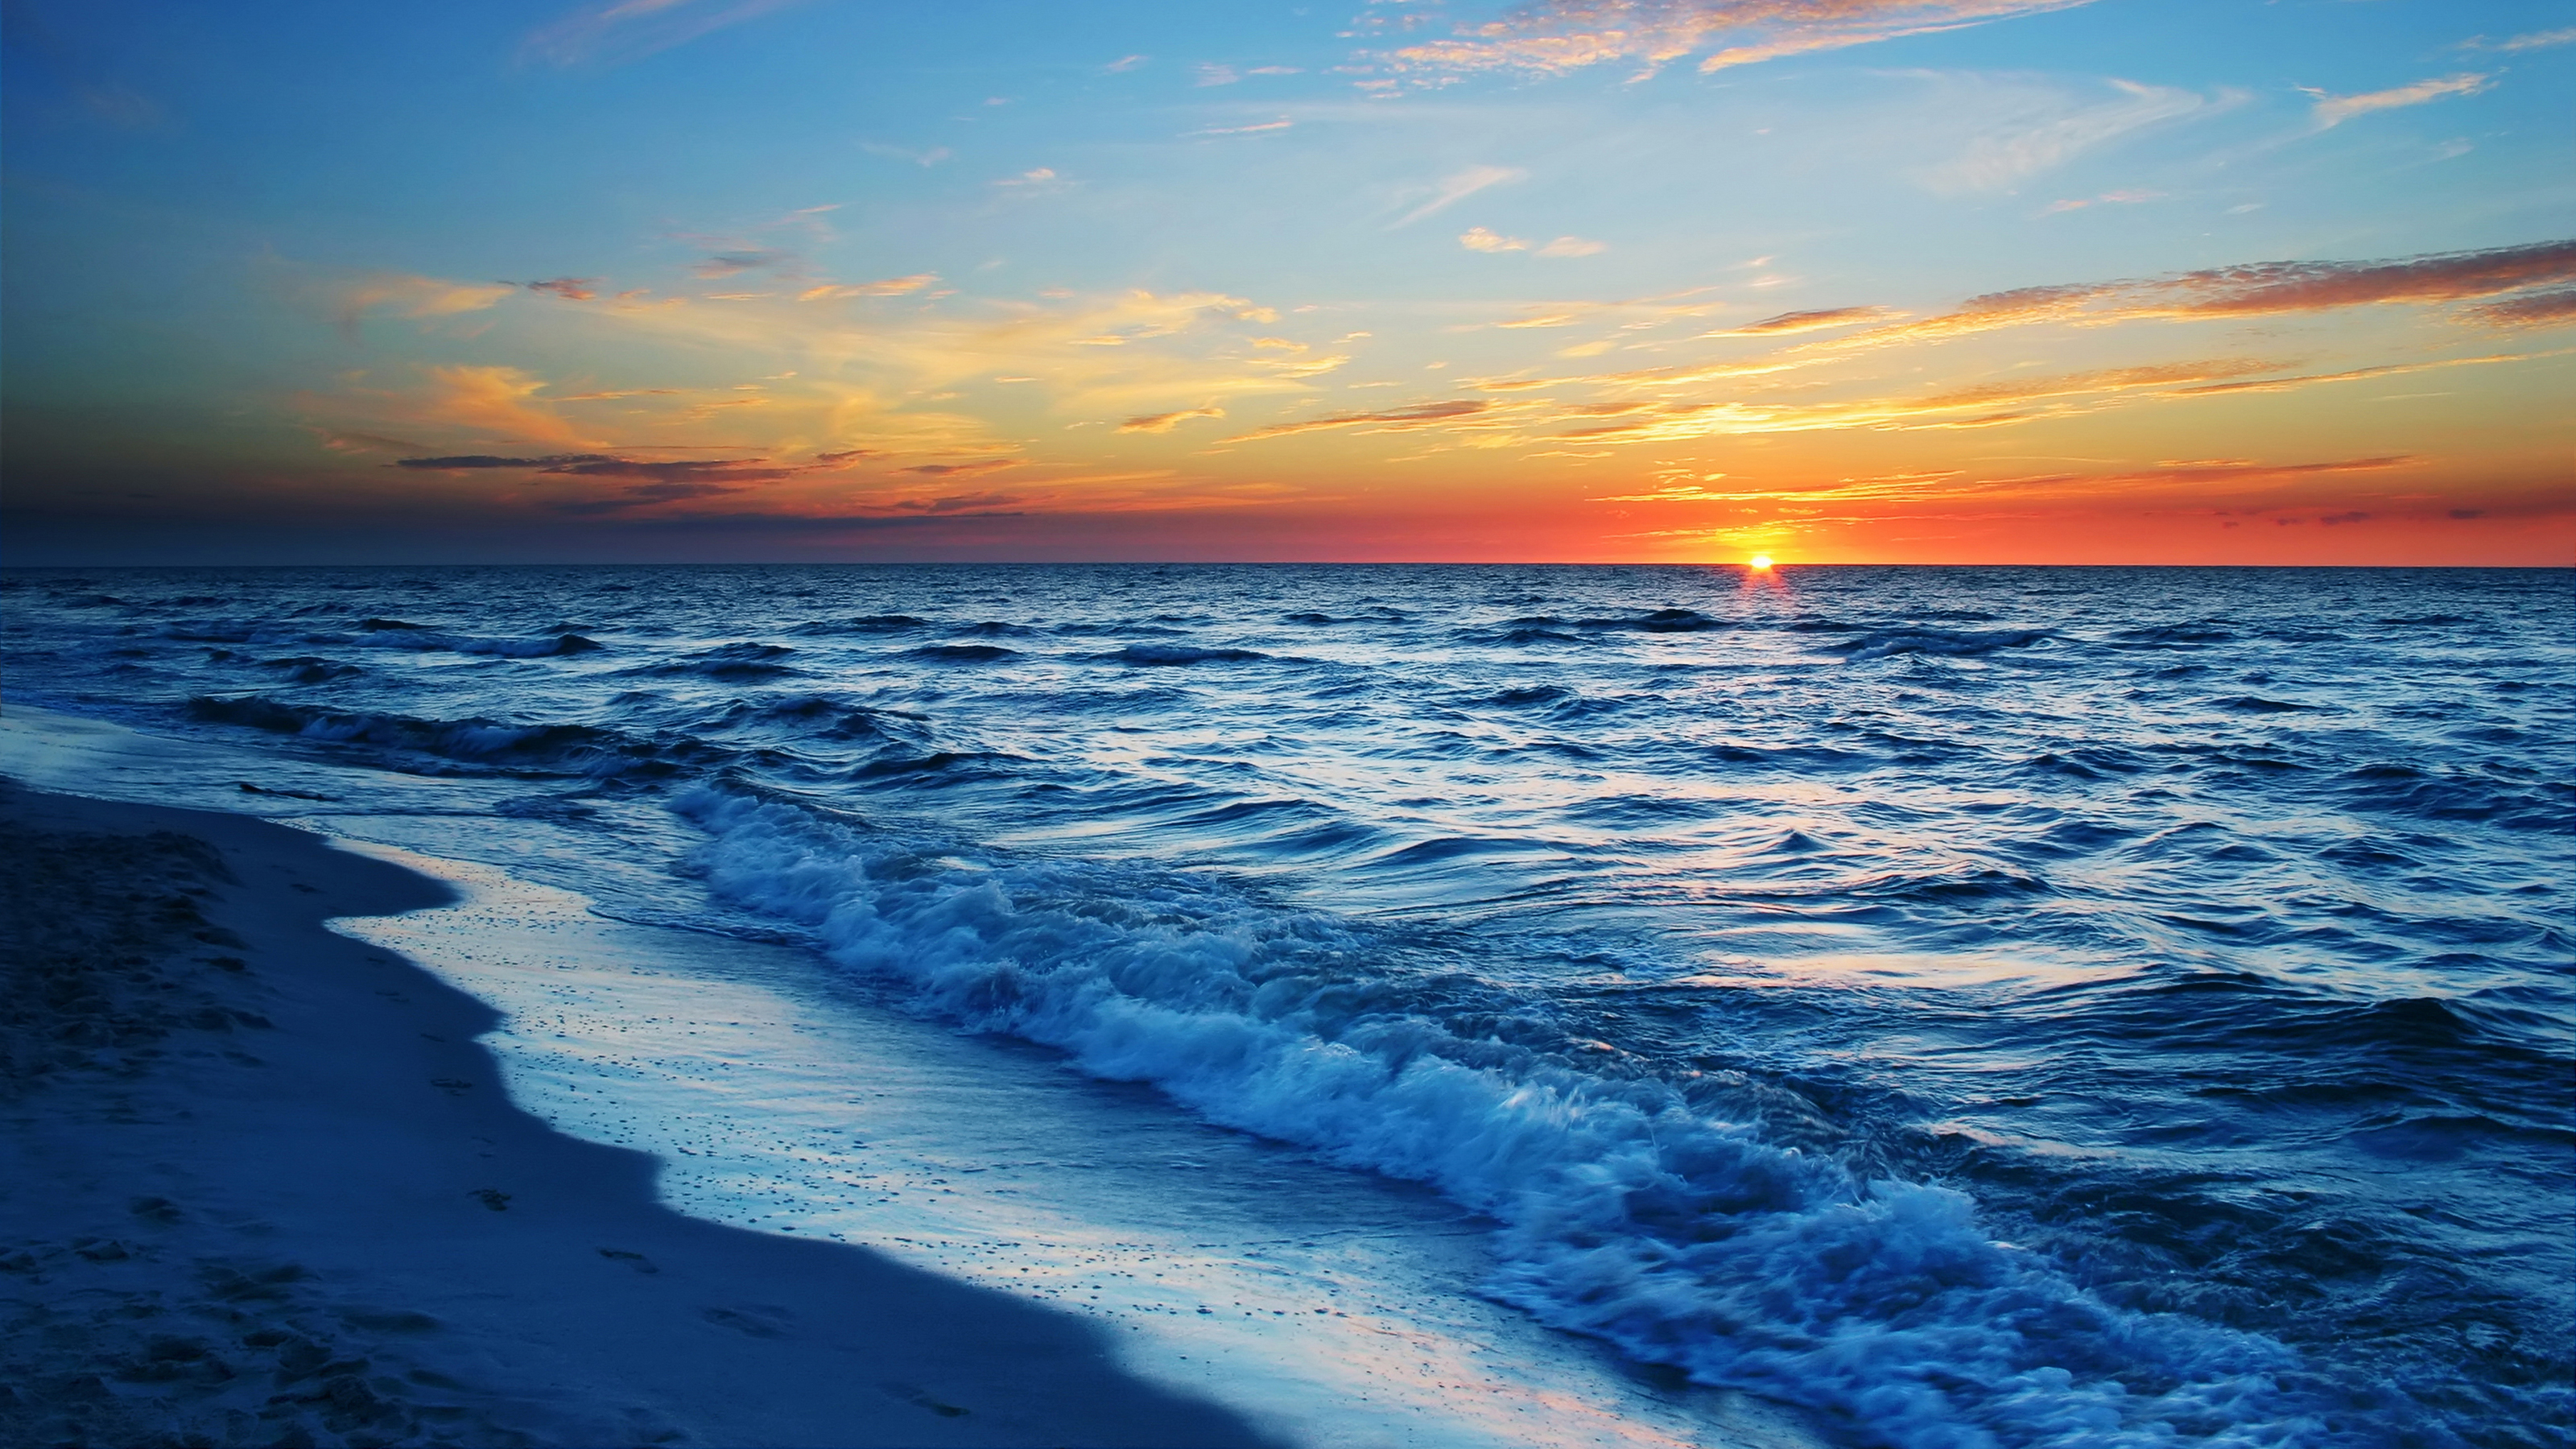 waves sea calm sunset hd nature 4k wallpapers images backgrounds